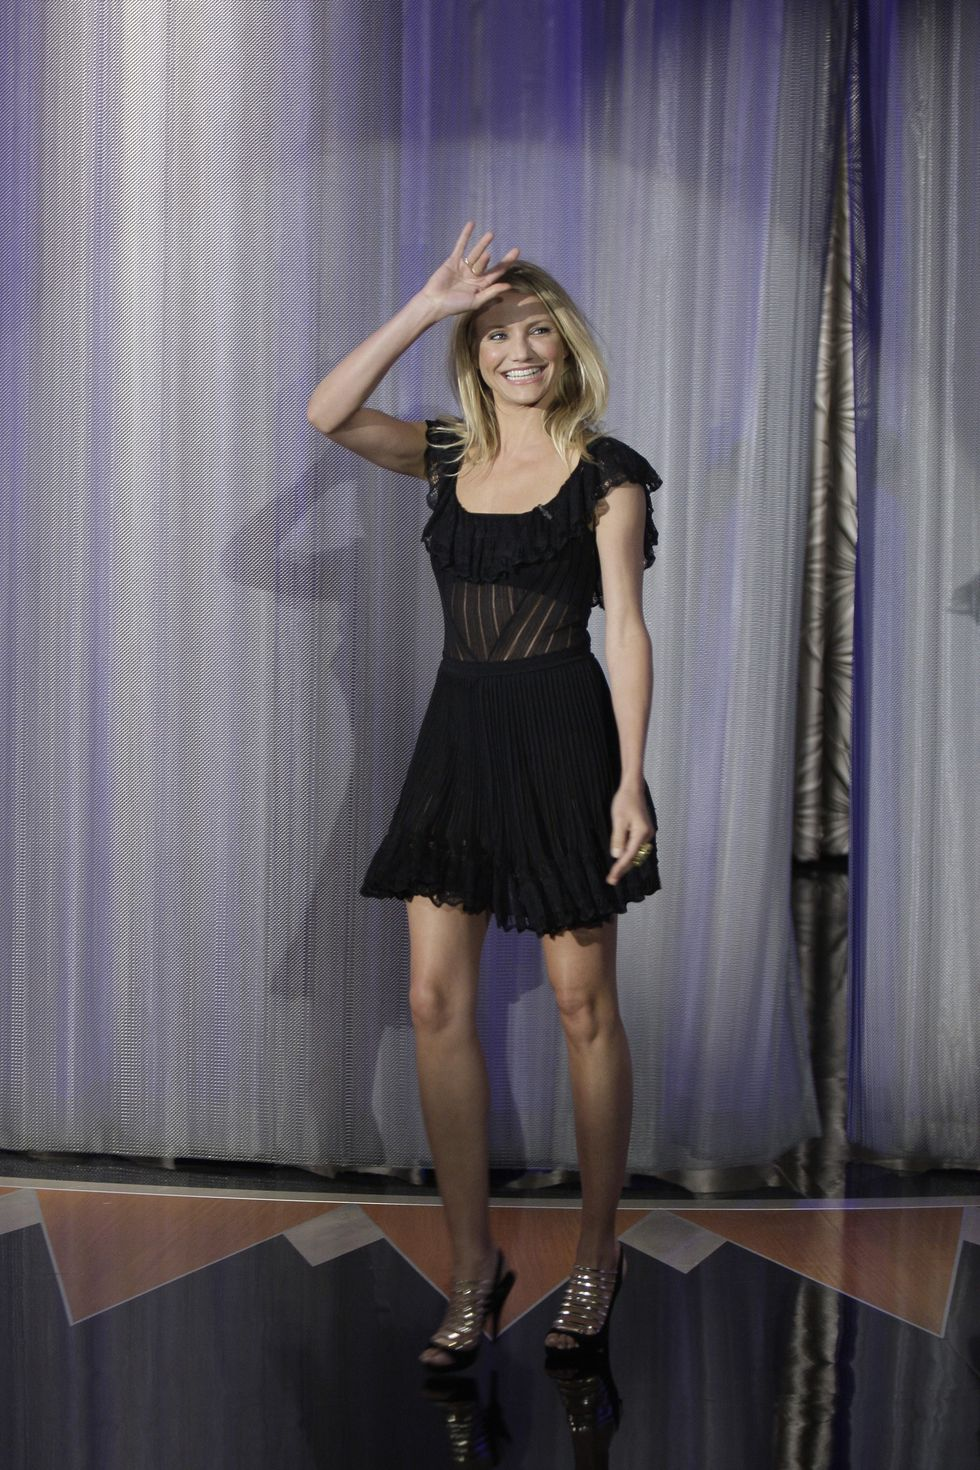 cameron-diaz-at-tonight-show-with-conan-obrien-in-los-angeles-01